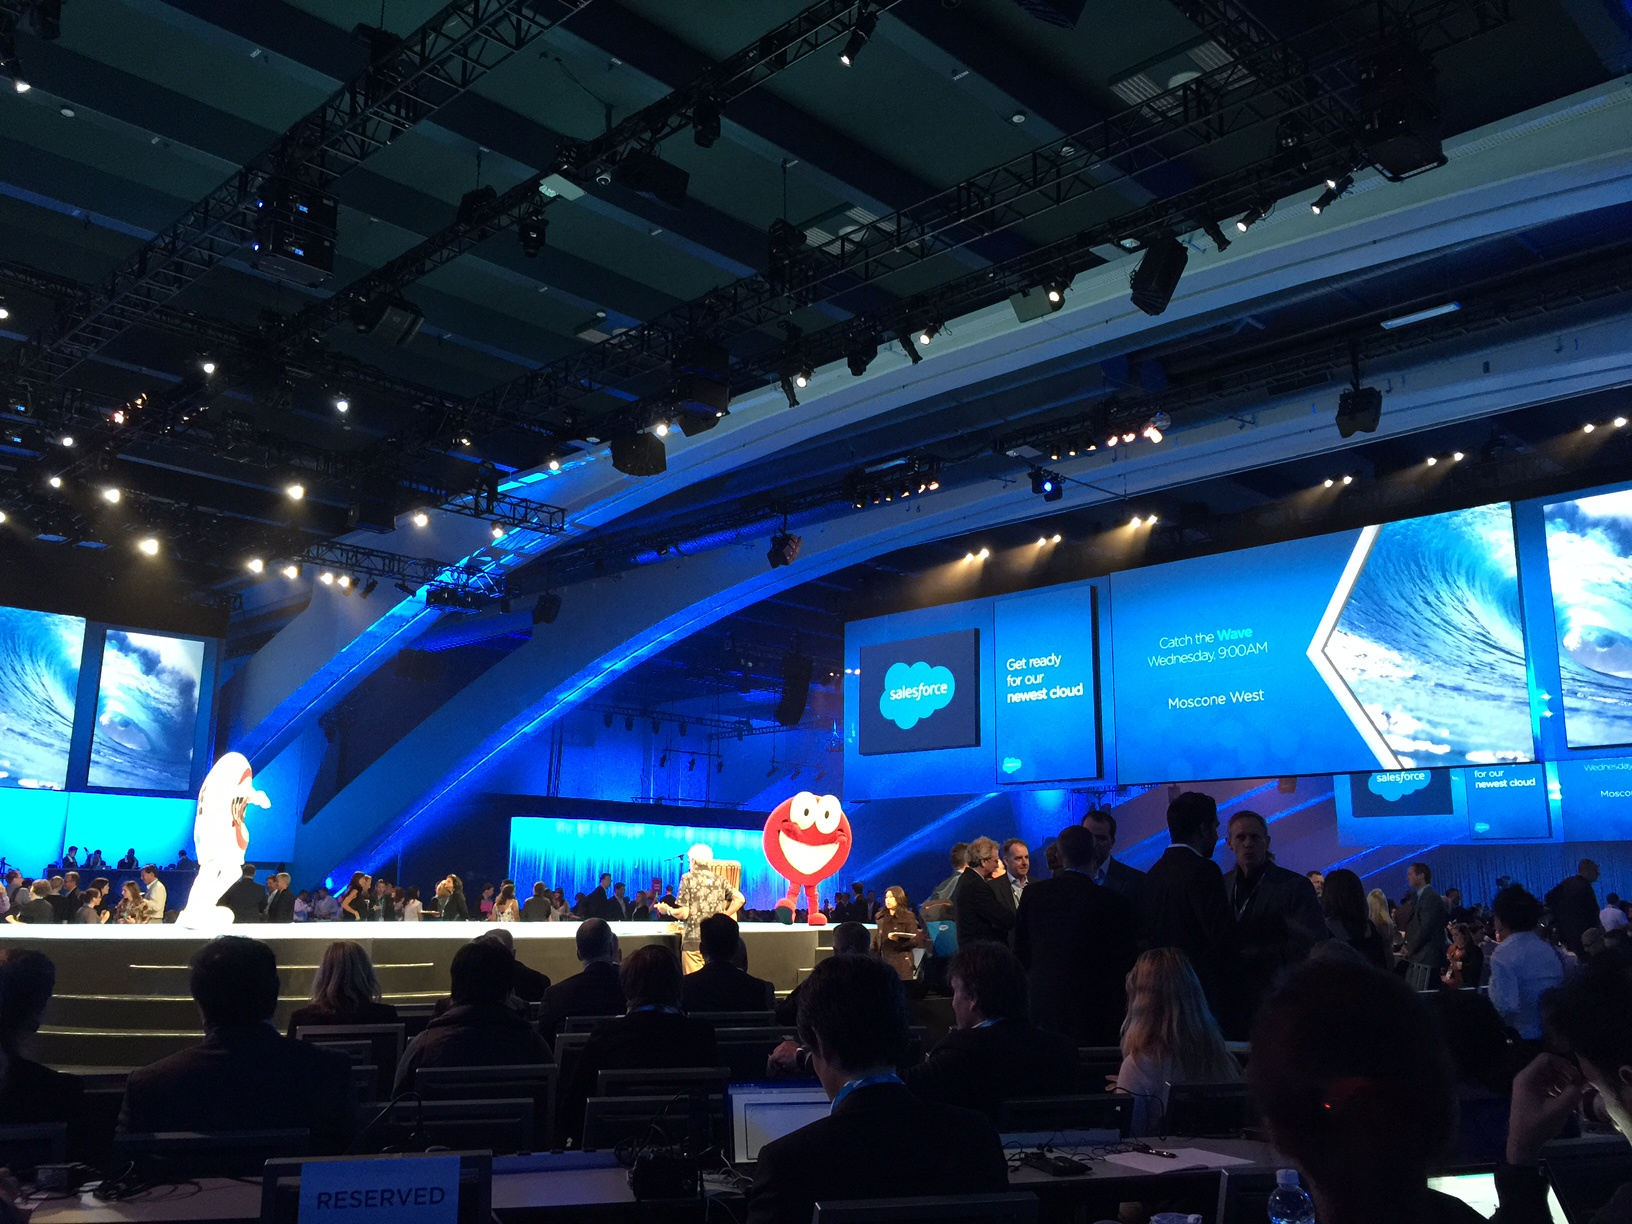 Dreamforce 14: Live Blogging the Benioff Keynote #df14